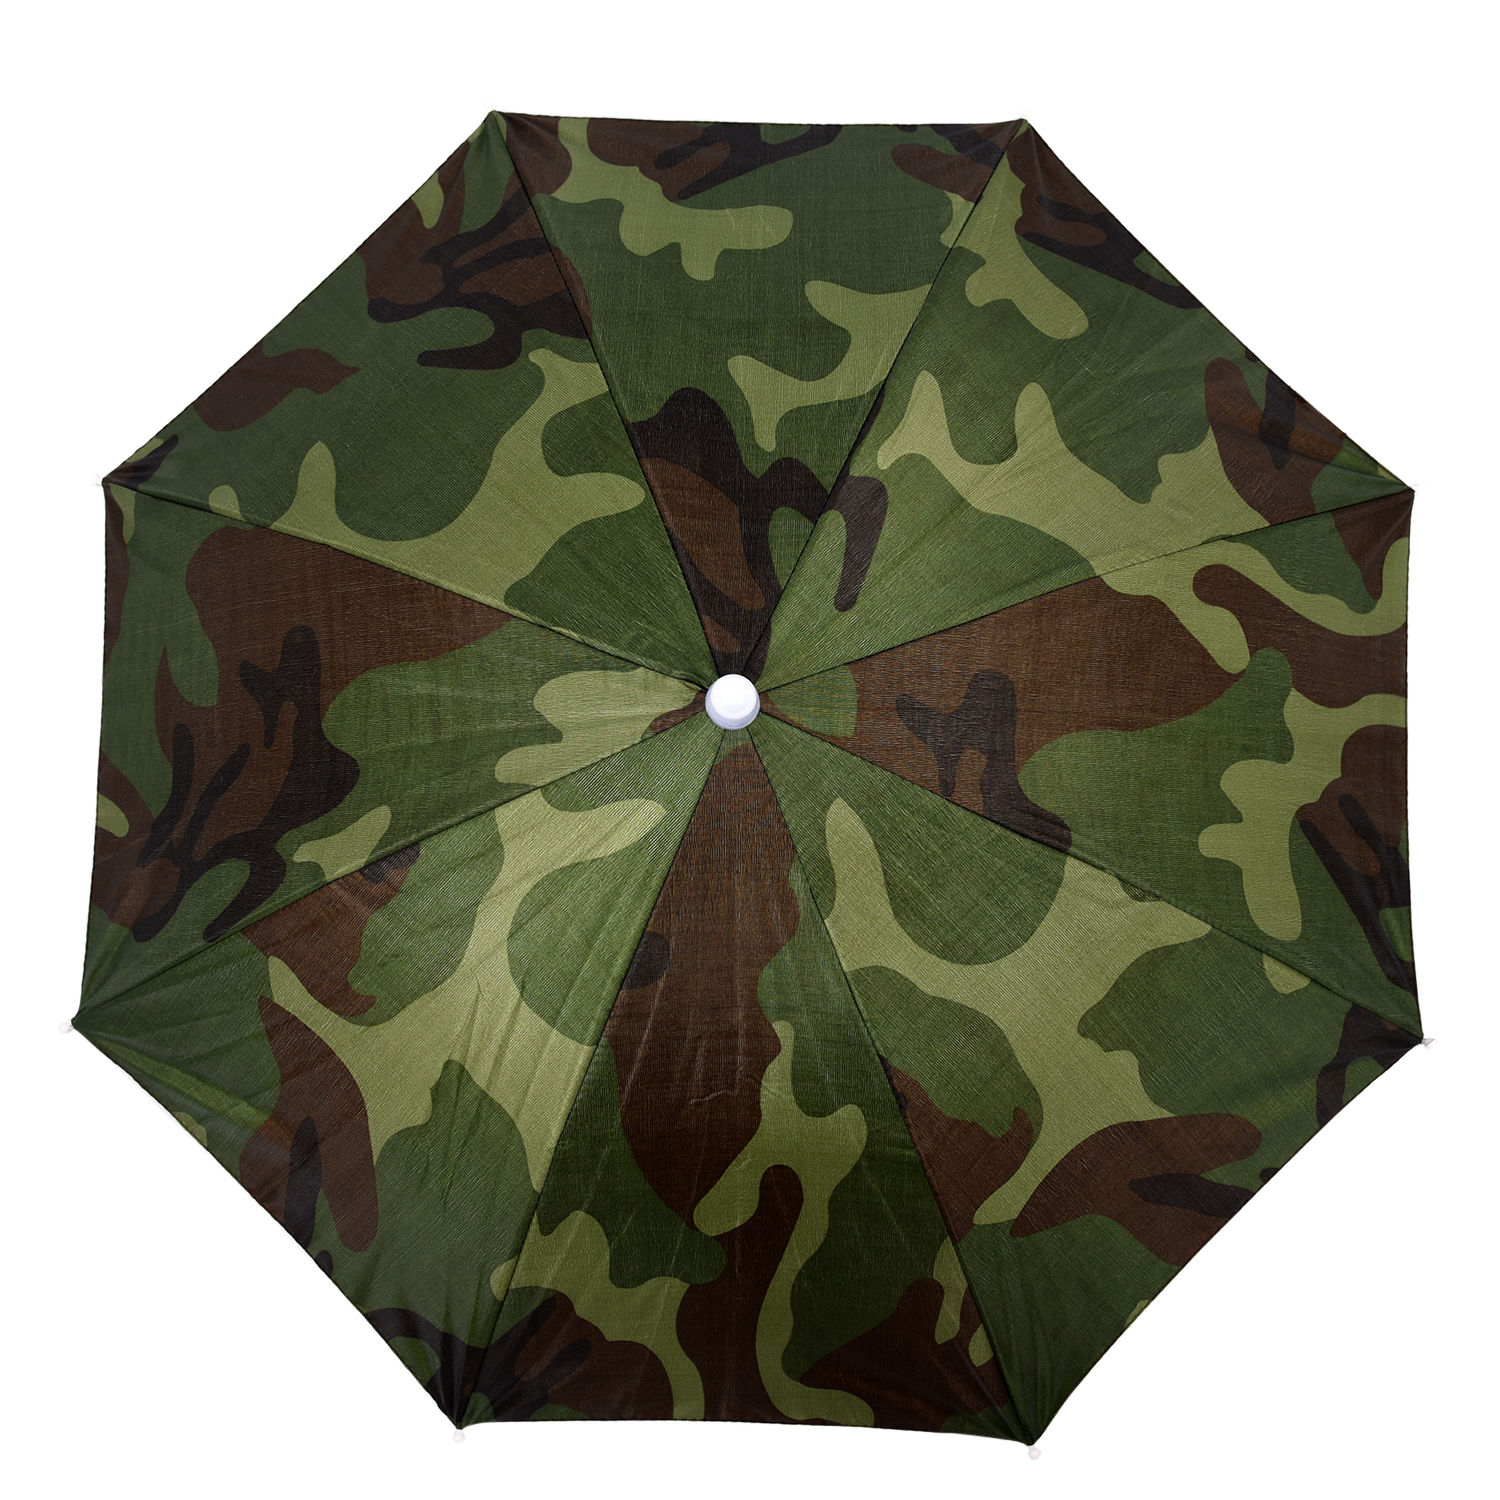 Wholesale! Elastic Headband Camouflage Pattern Sun Rain Umbrella Hat Cap for Fishing